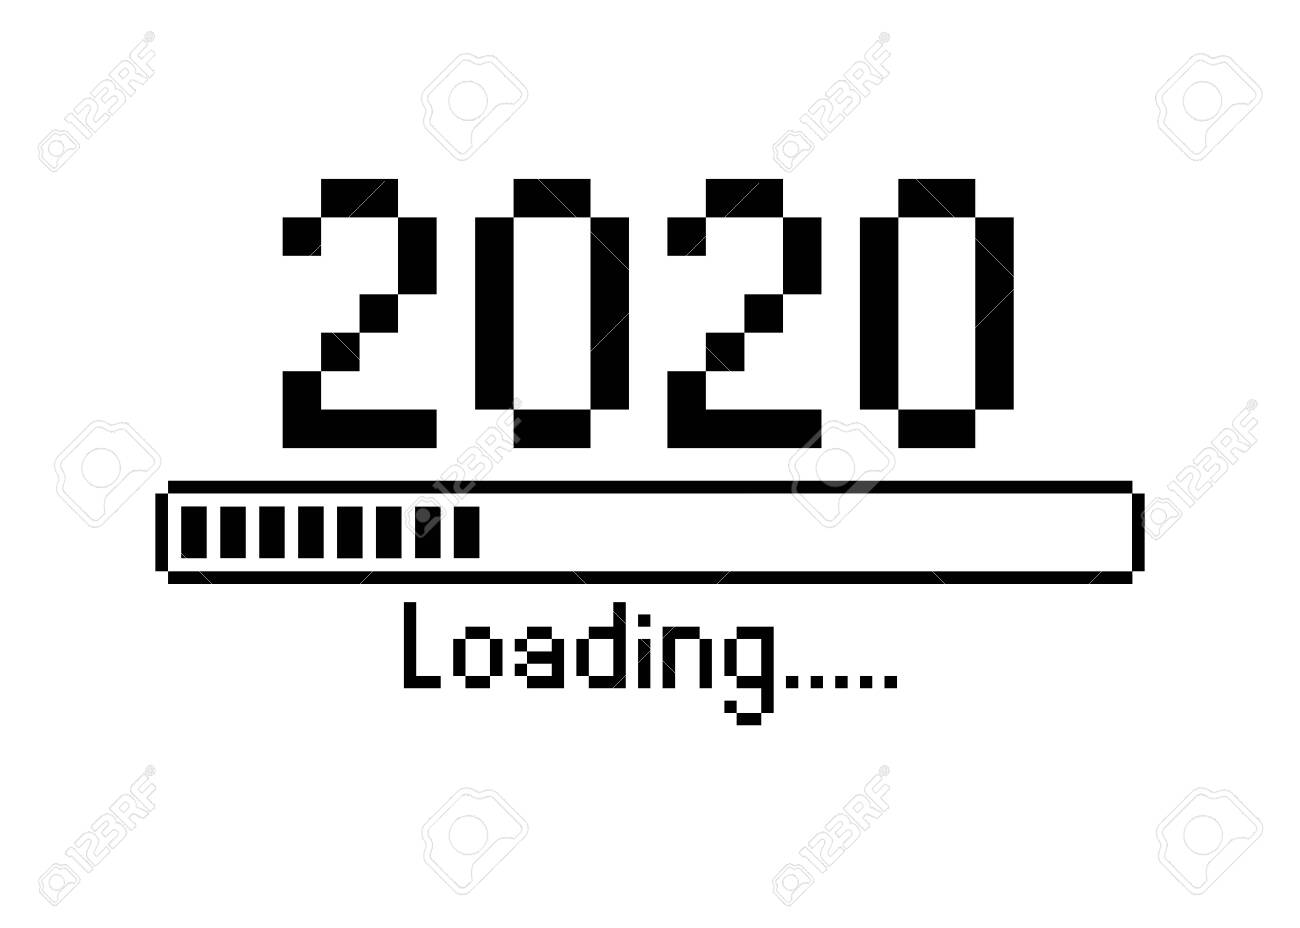 Happy New Year 2020 With Loading Icon Pixel Art Bitmap Style 1300x928